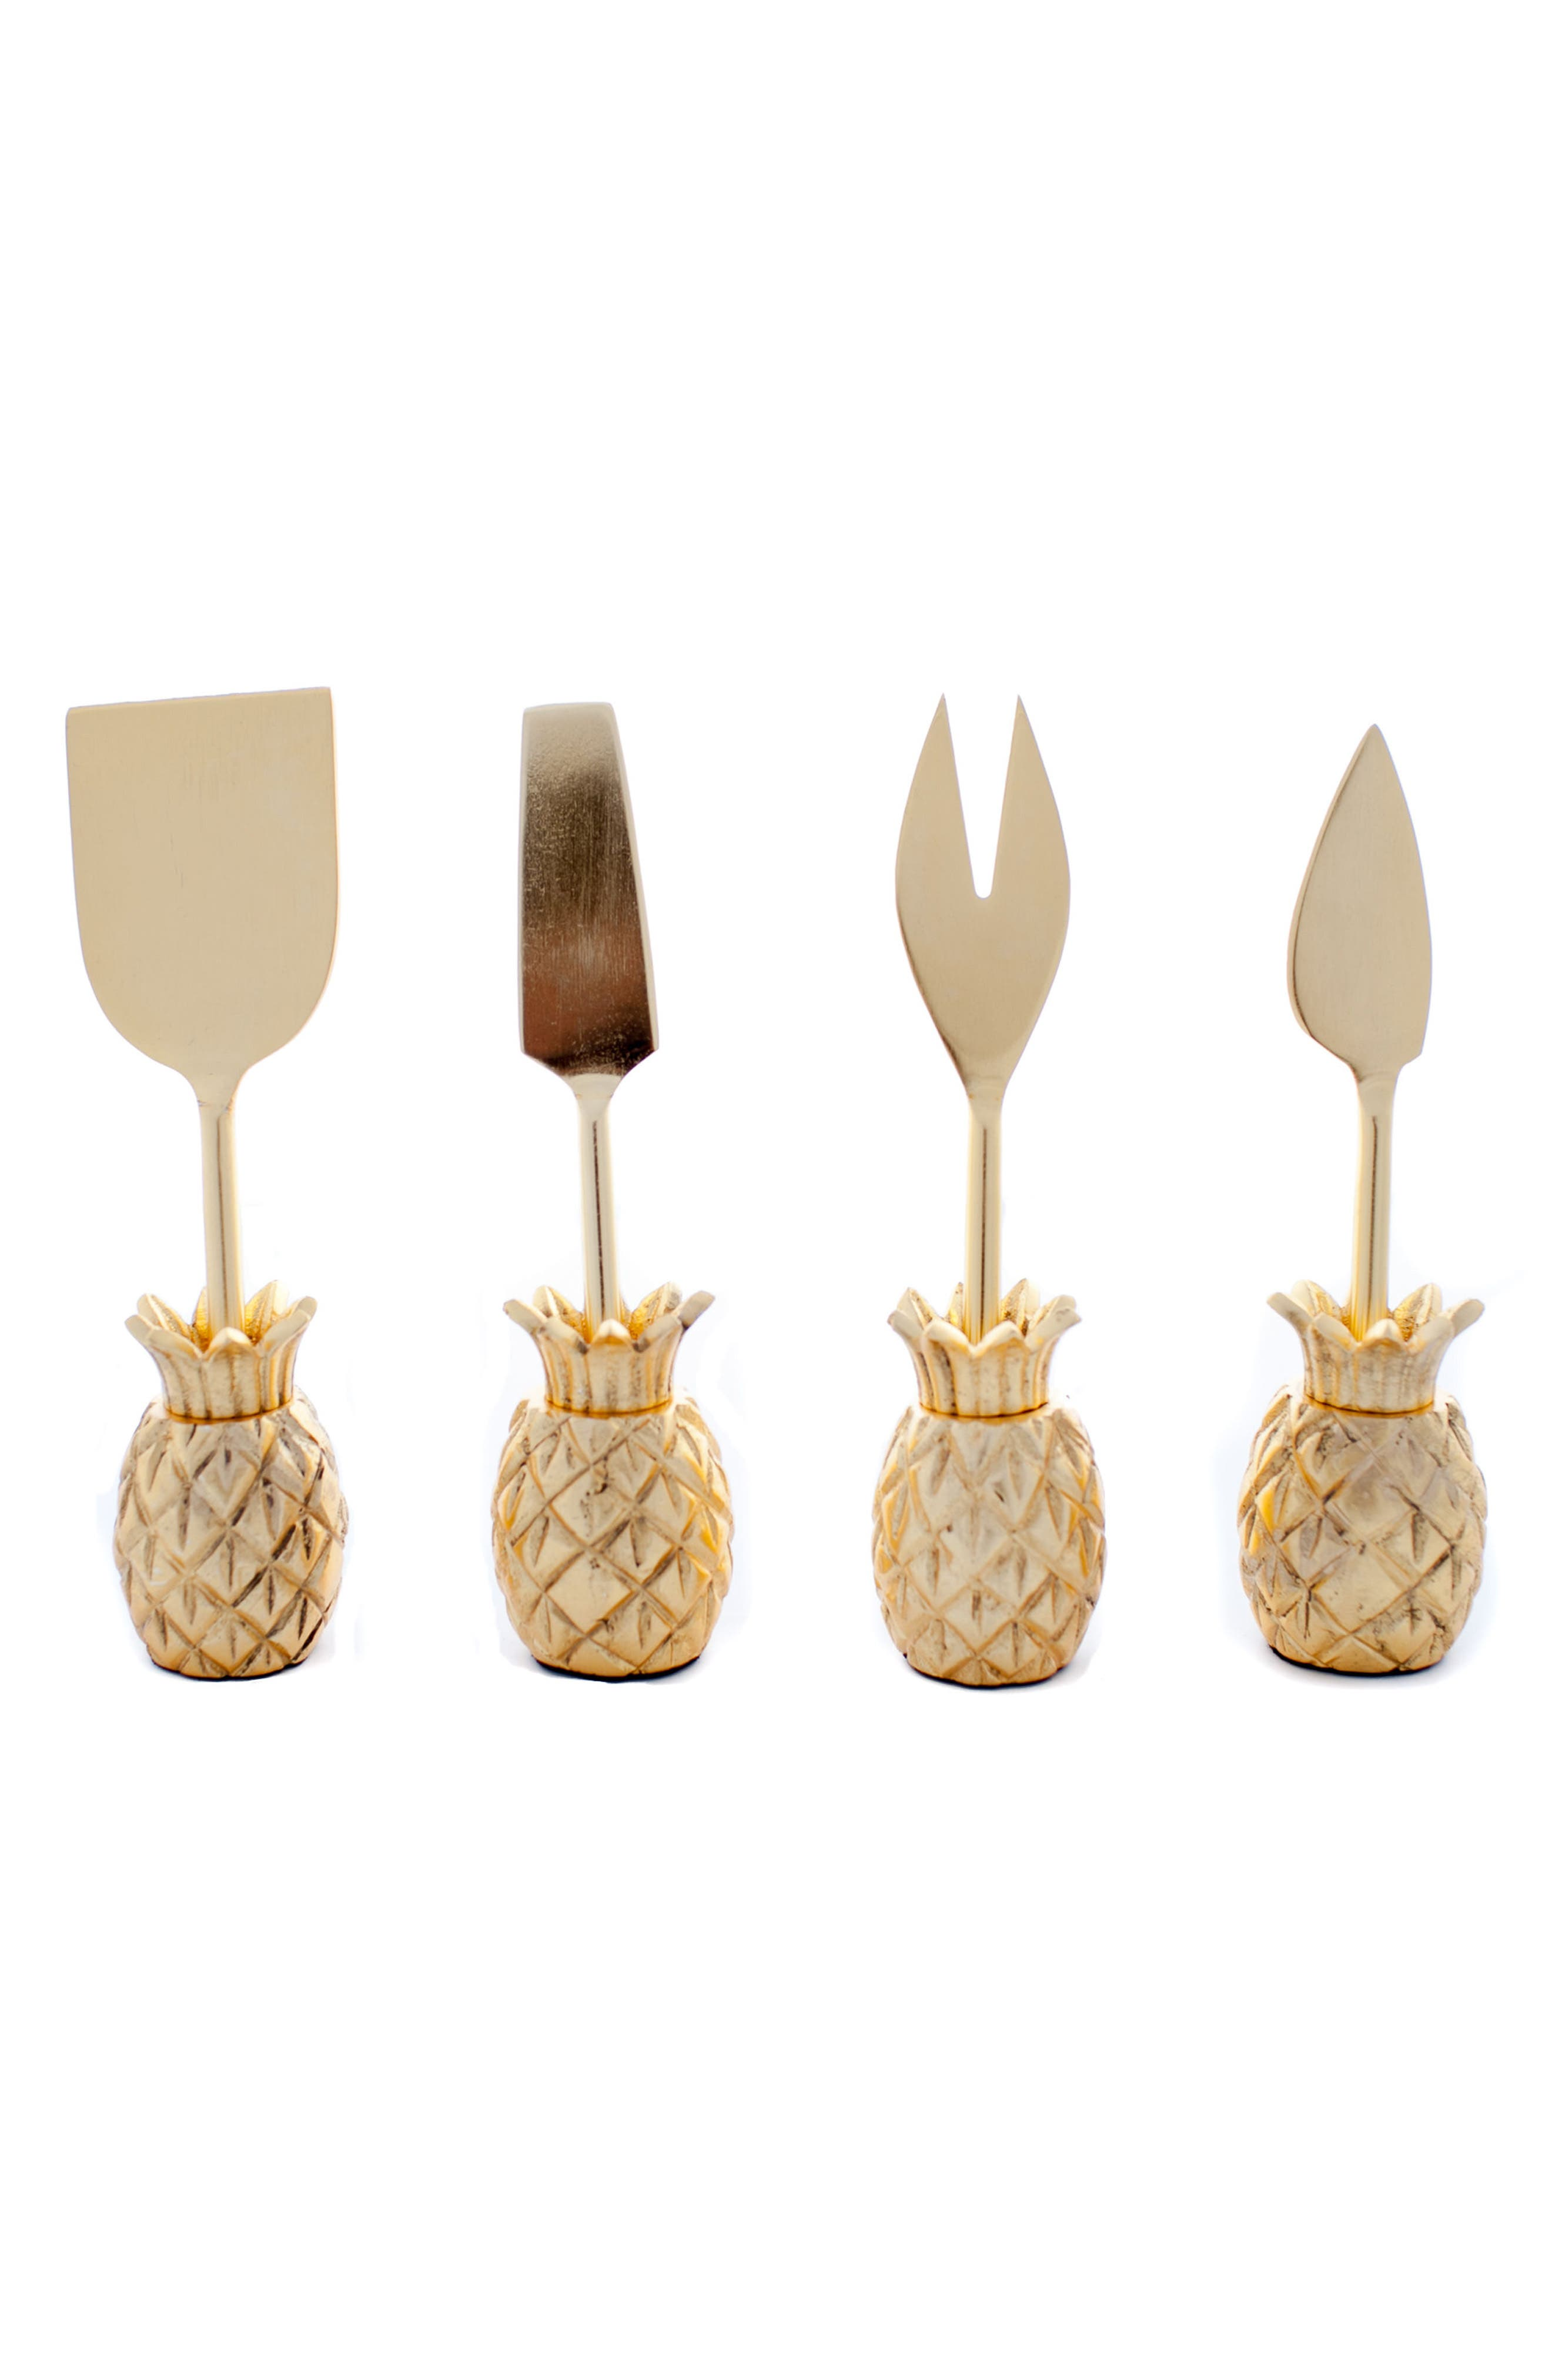 Main Image - zestt Luau Set of 4 Cheese Knives